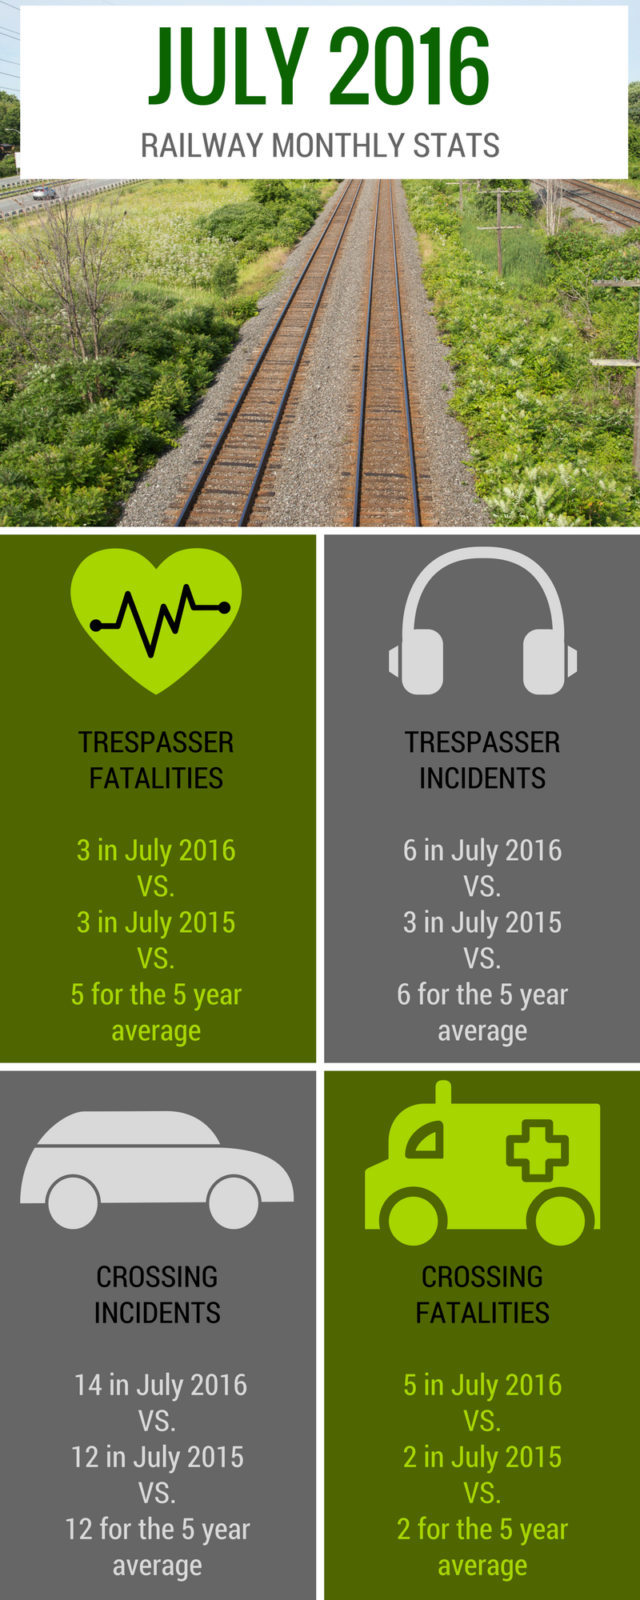 Railway monthly stats July 2016